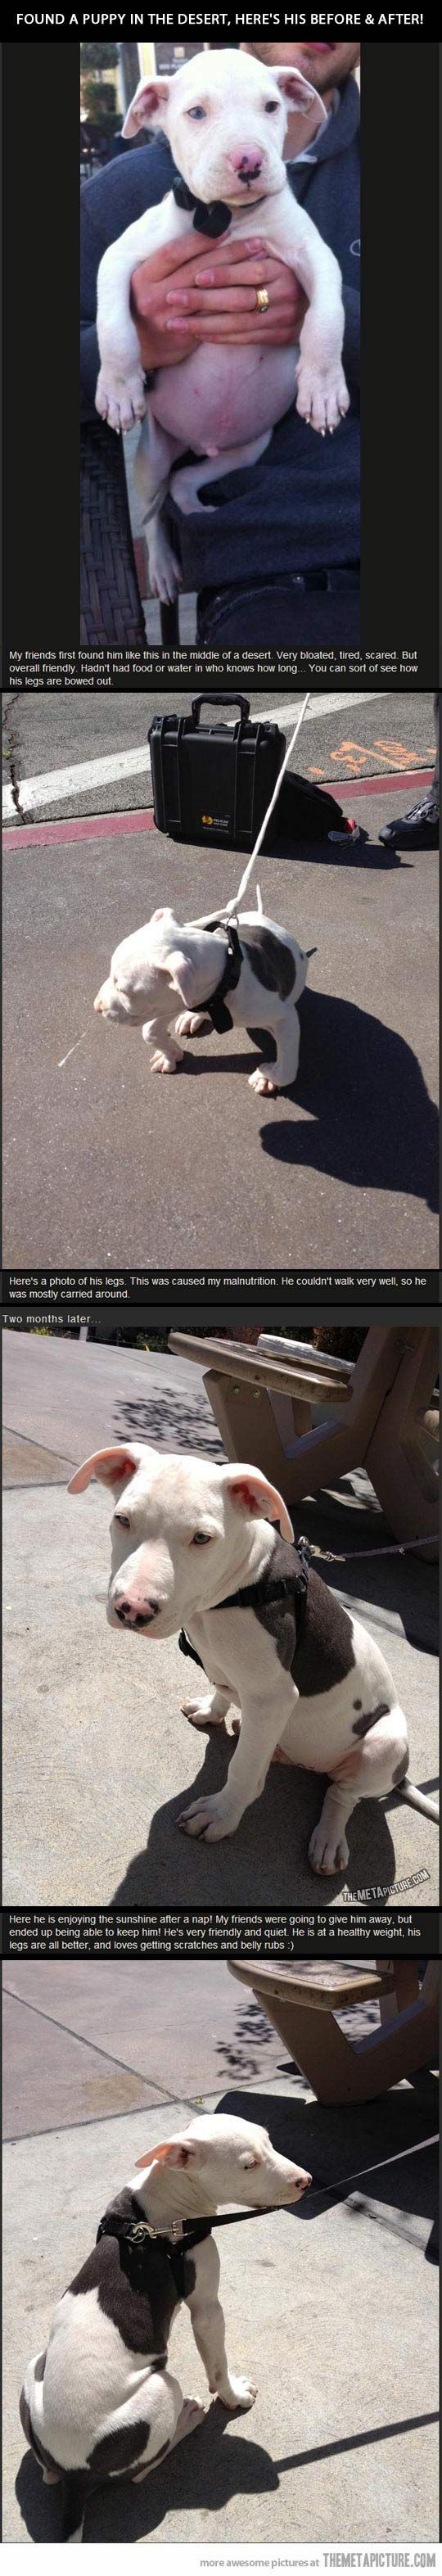 Friends found a puppy in the desert, faith in humanity restored…